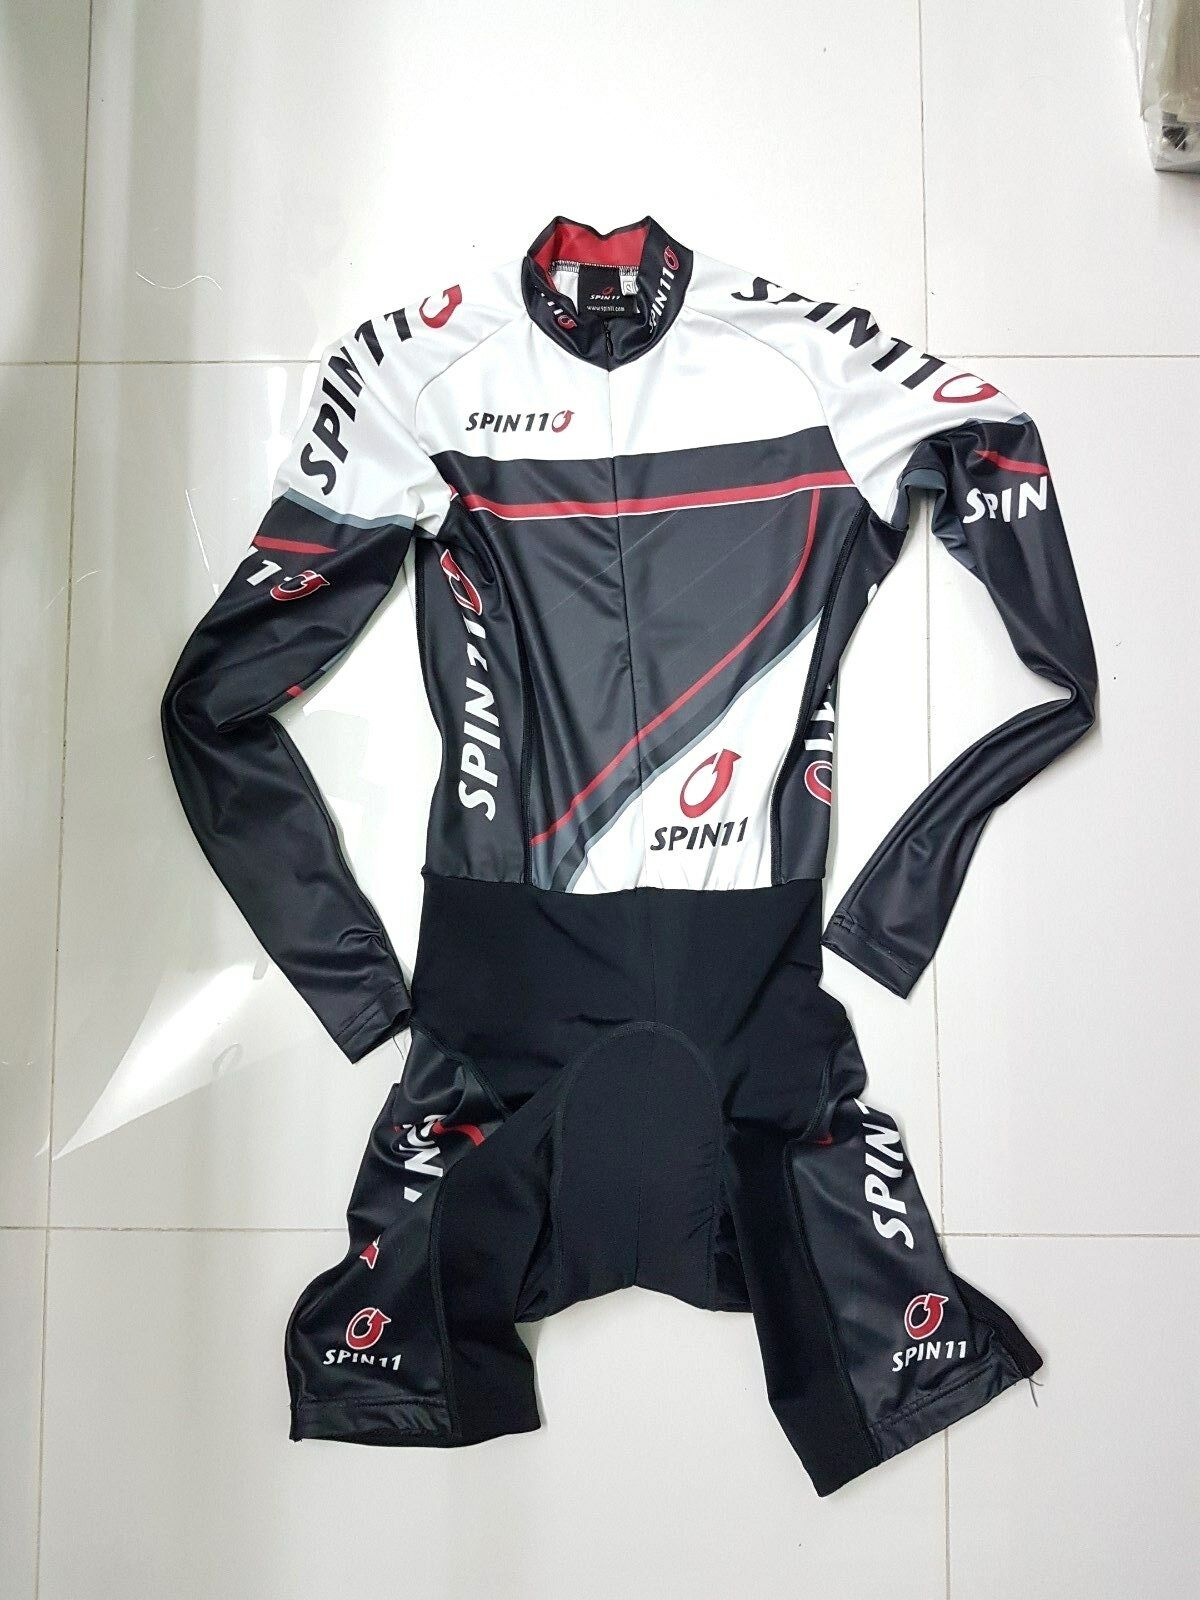 Spin11 Cycling skinsuit in long sleeve